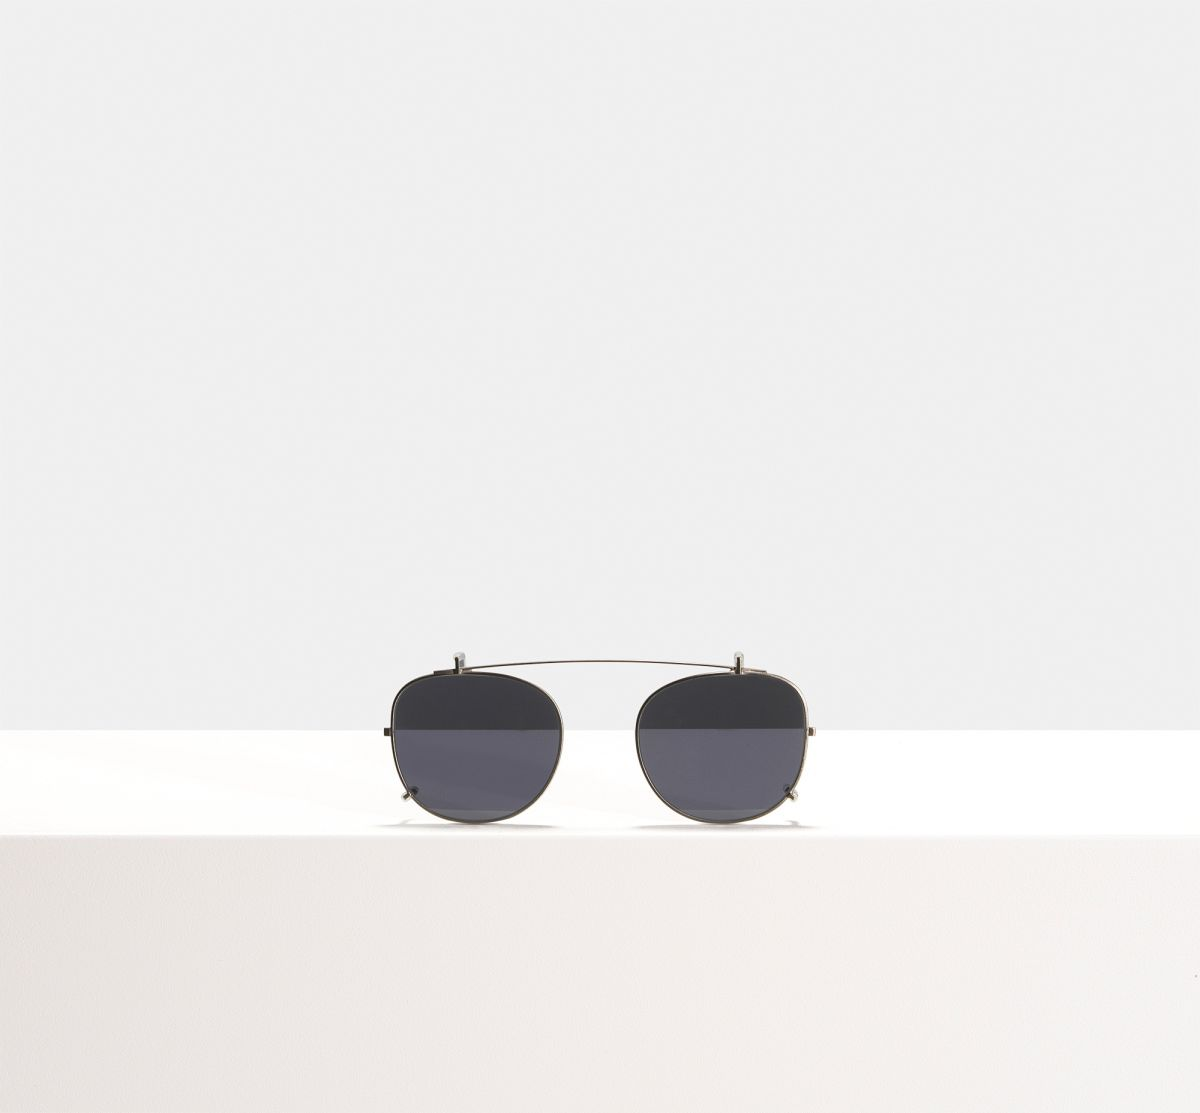 Milan clip-on other metal glasses in Gunmetal by Ace & Tate